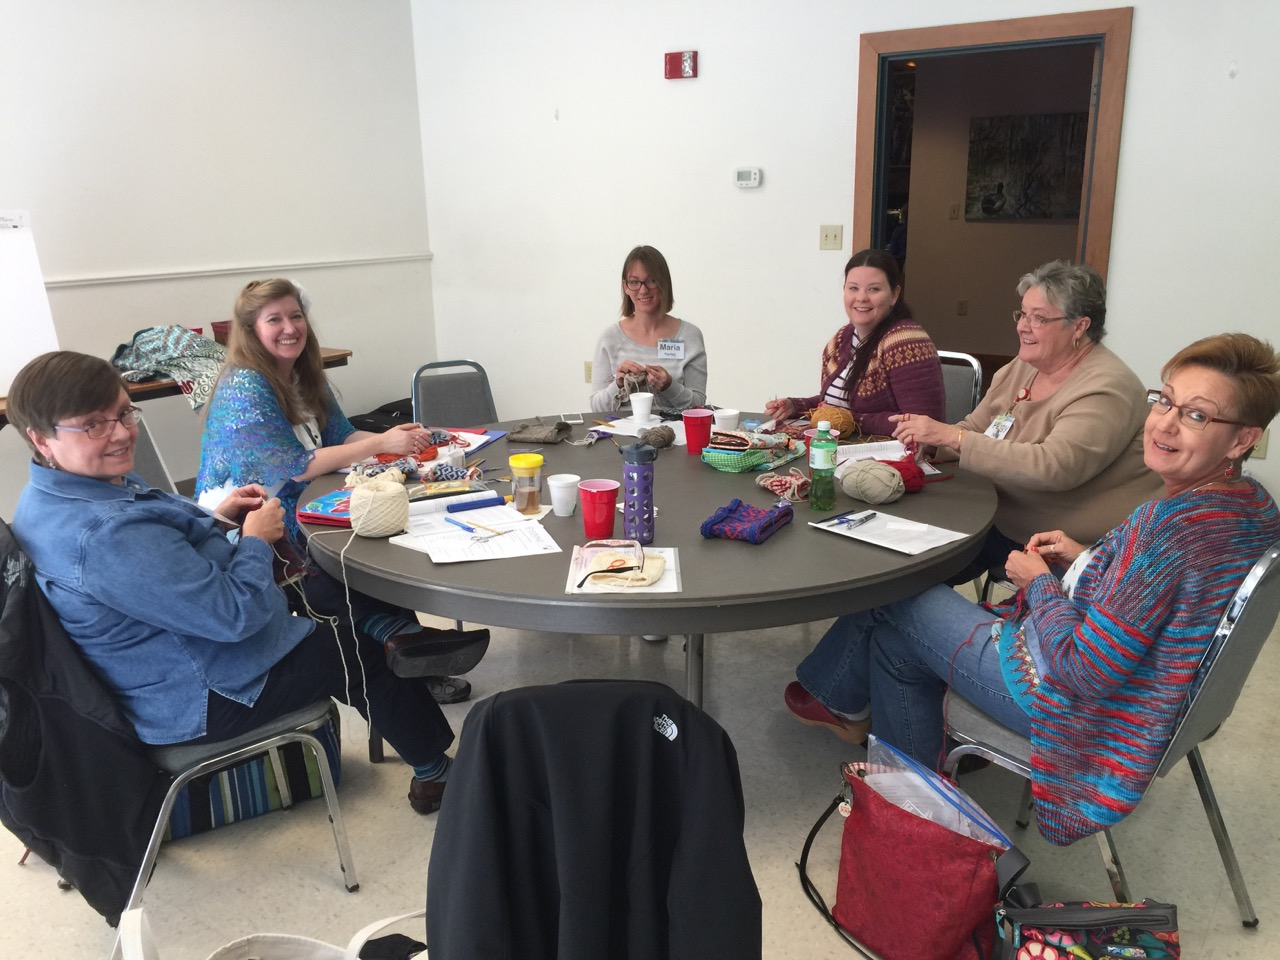 Heather Storta taught several knitting workshops at CFF. Photo: Jan Smiley.